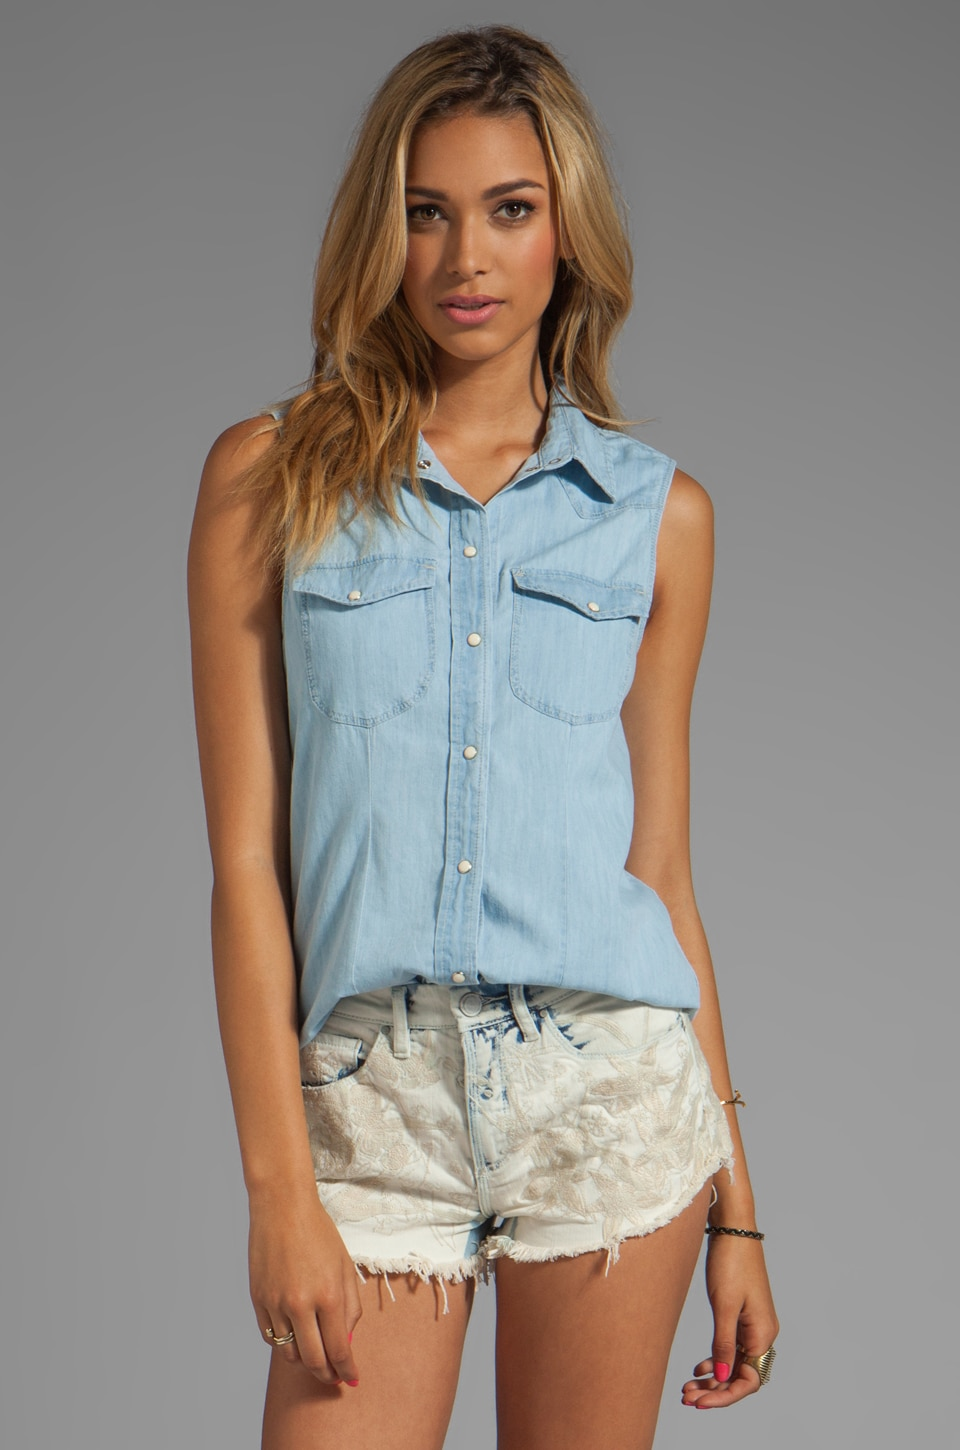 Sanctuary Provence Blues Sleeveless Shirt in Chambray